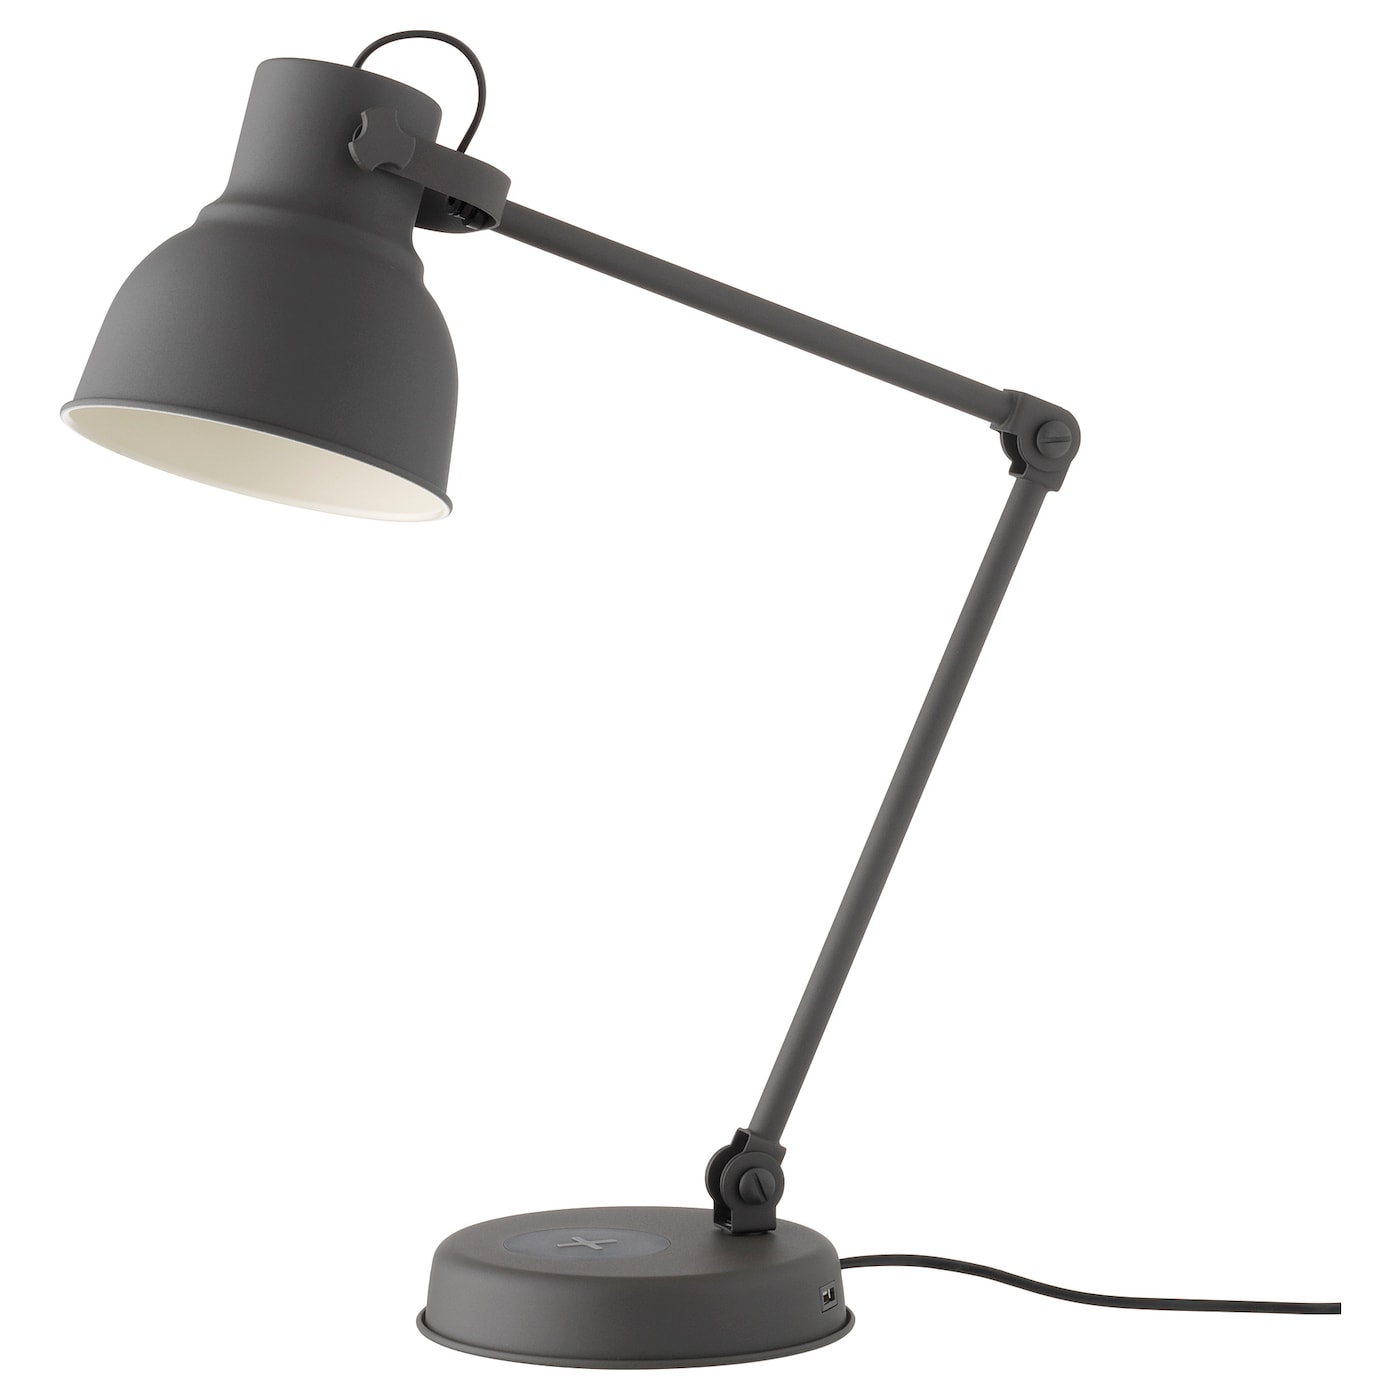 IKEA HEKTAR work lamp with wireless charging Provides a directed light that is great for reading.